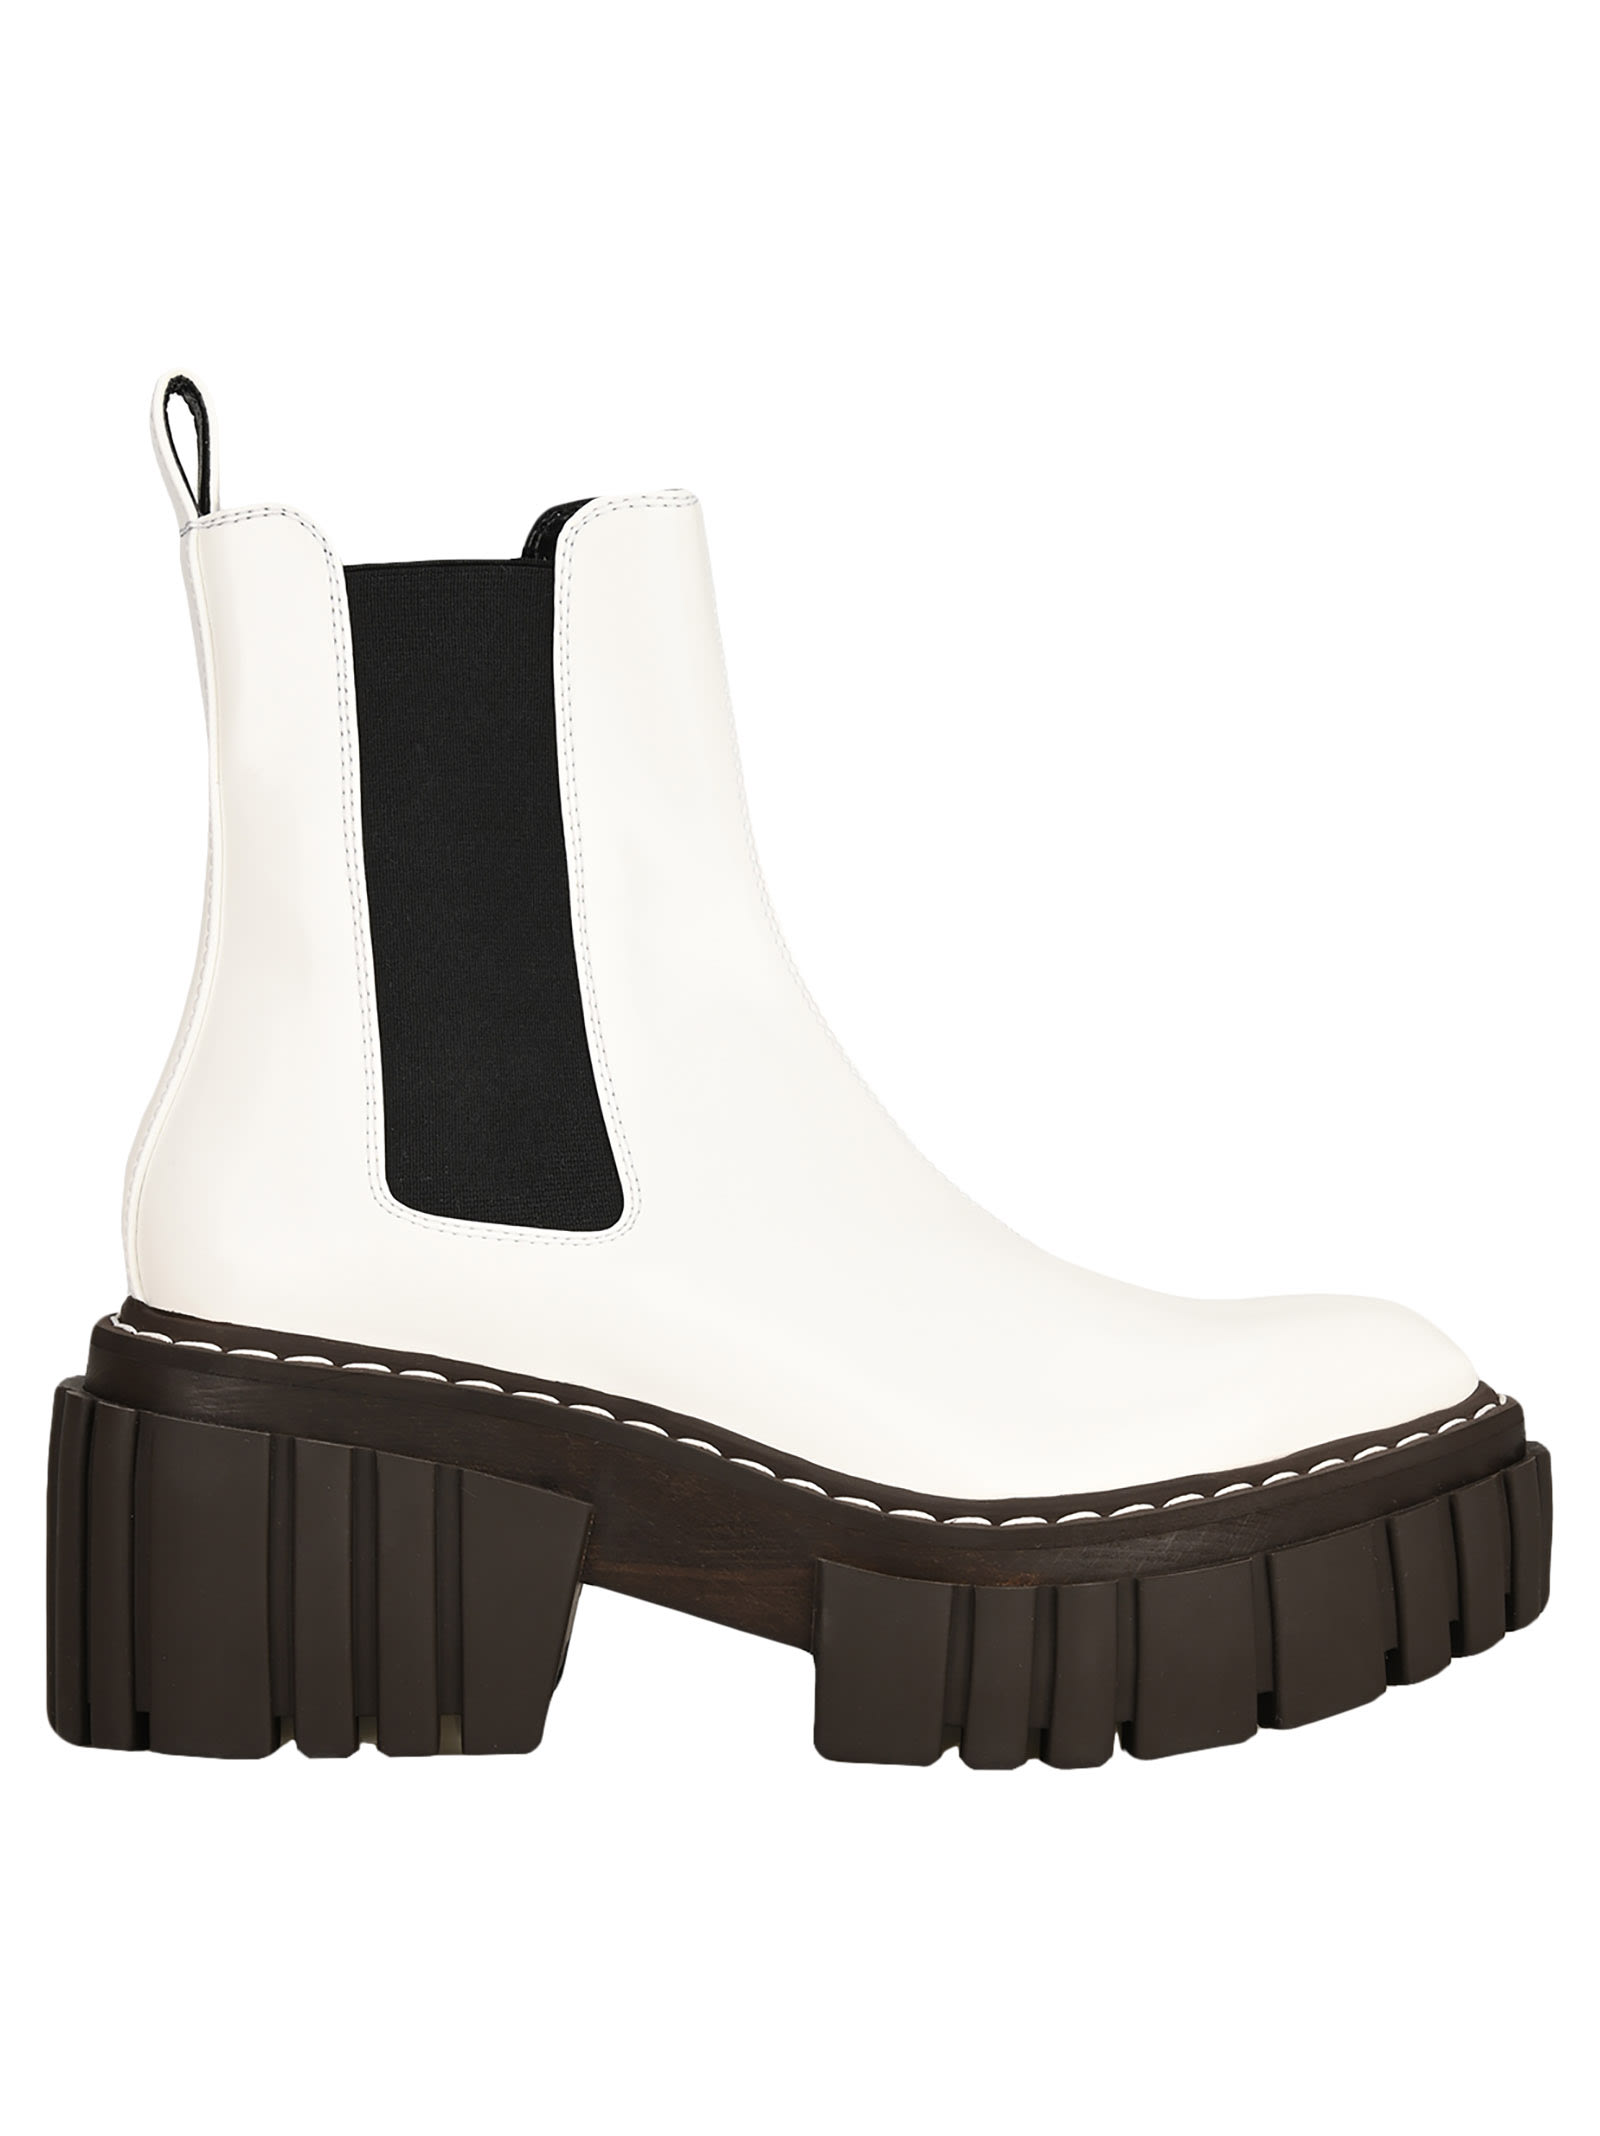 Buy Stella Mccartney Emilie Boots online, shop Stella McCartney shoes with free shipping